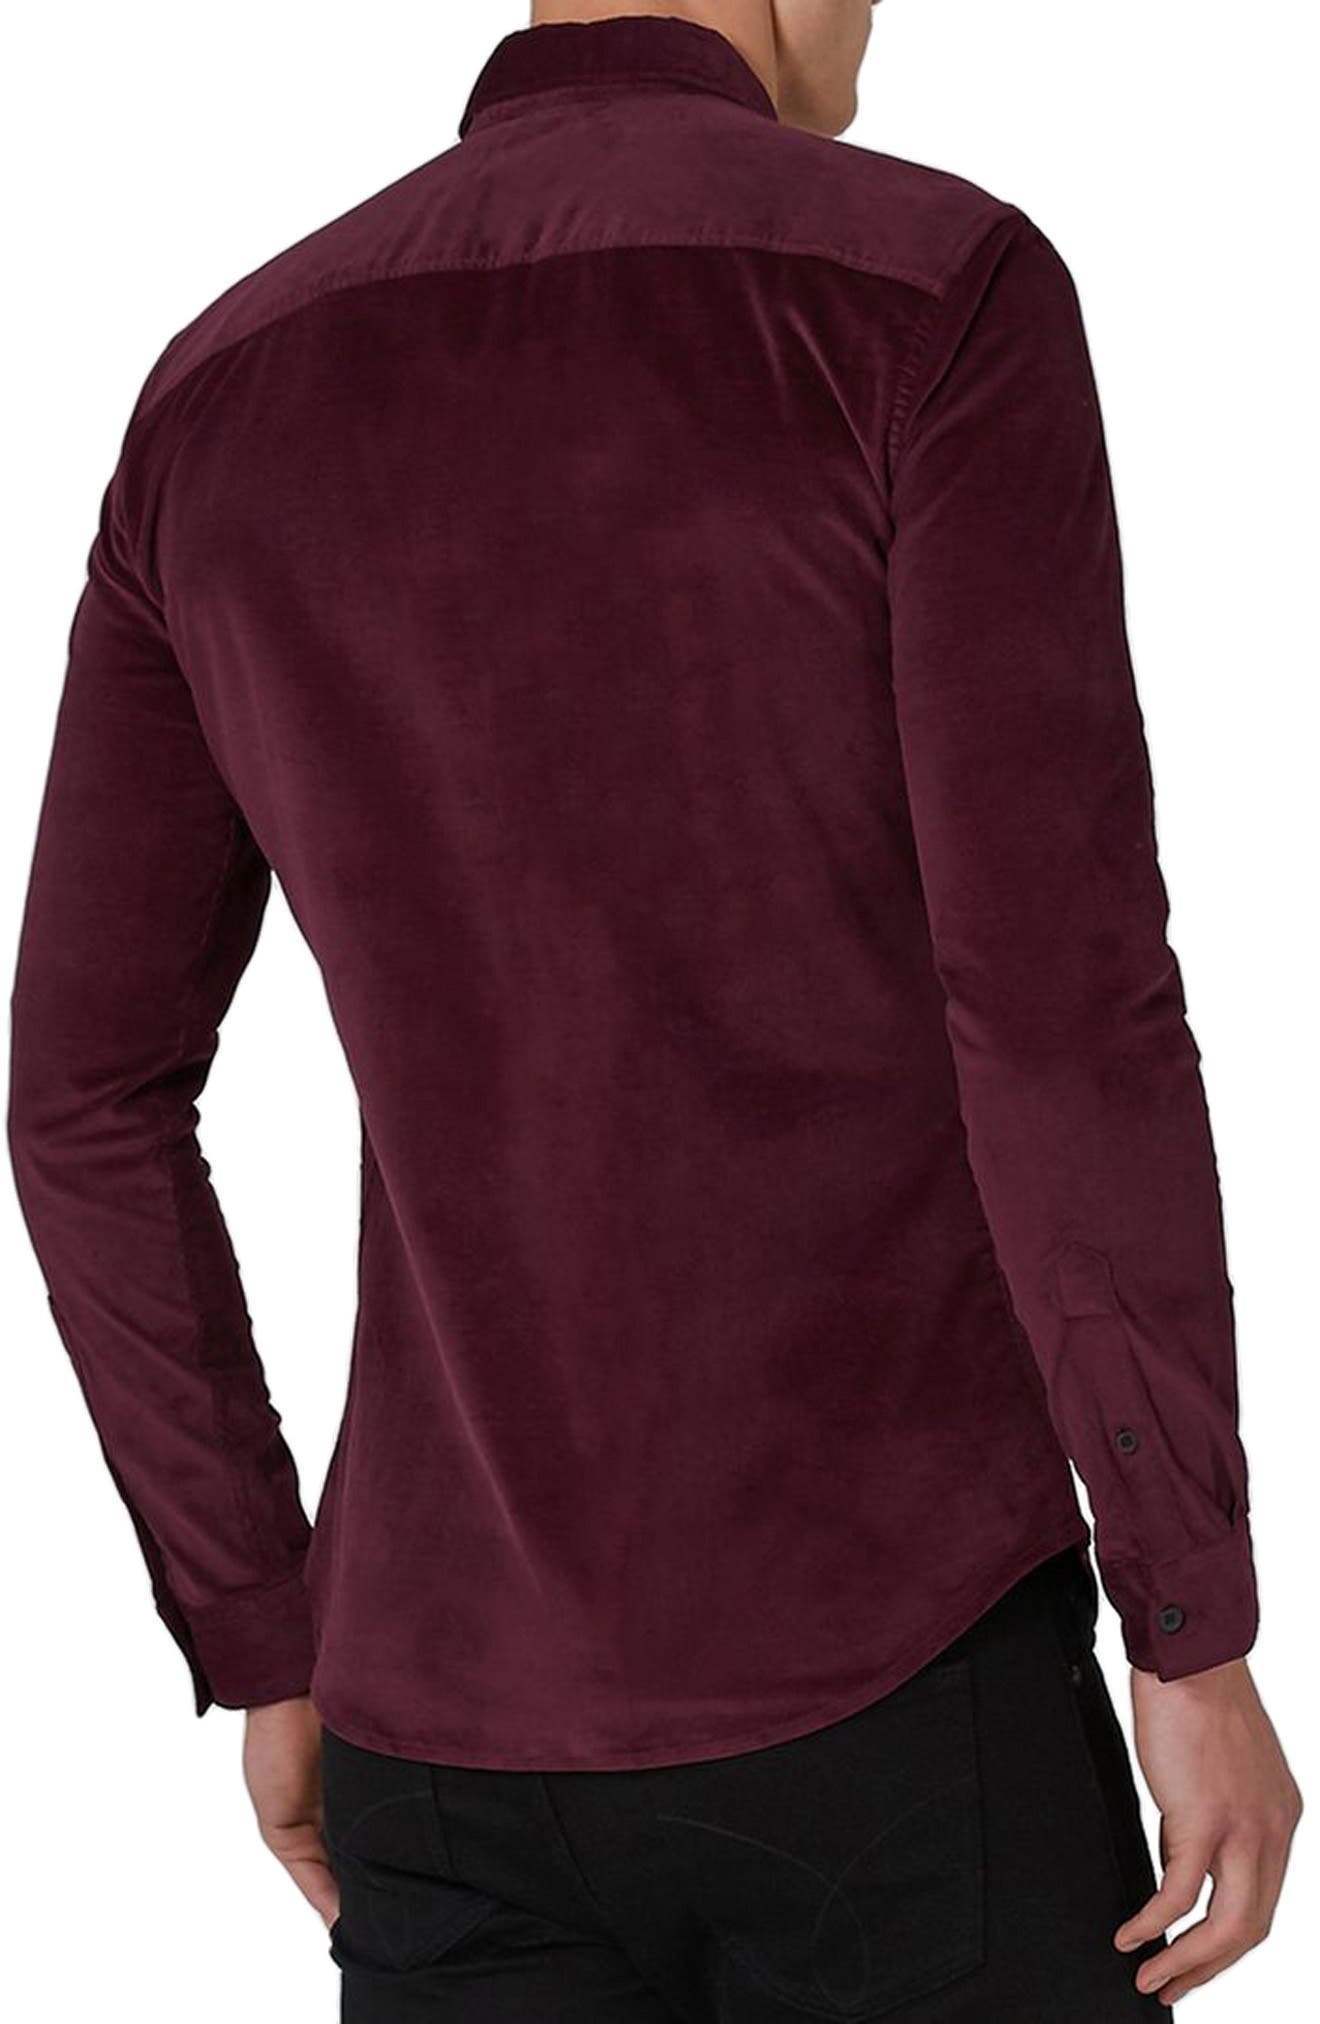 Muscle Fit Corduroy Shirt,                             Alternate thumbnail 2, color,                             Burgundy